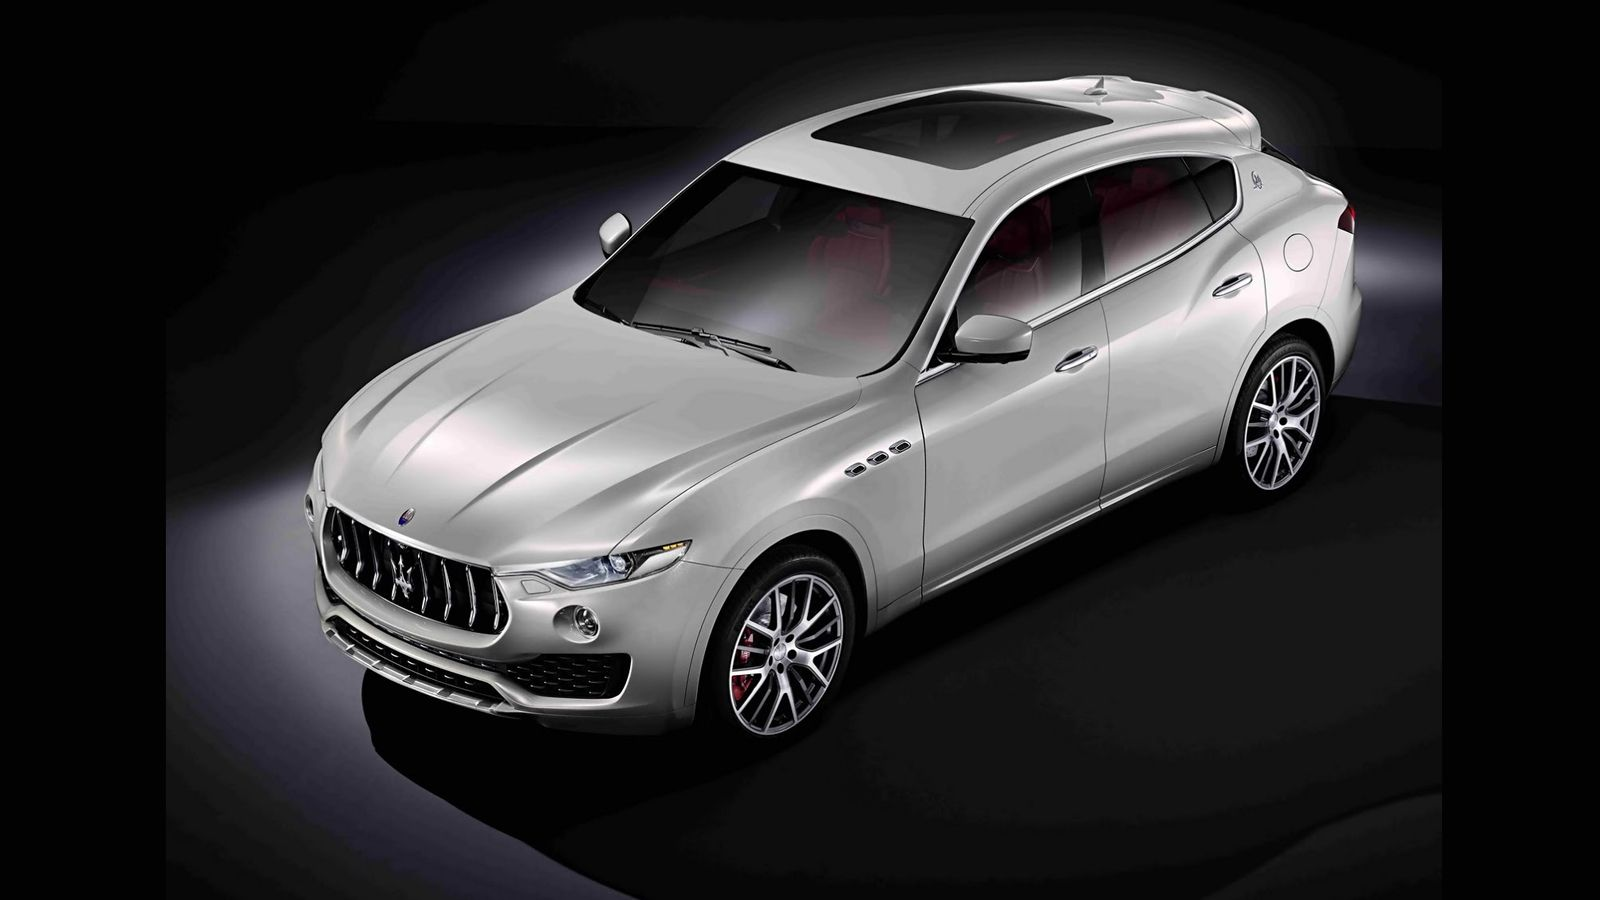 maserati levante vs model x with Aykshsh Sthn Paragwgh Ths Levante 134691 on Get To Know The 2017 Maserati Levante At Mike Ward Maserati Near Denver besides New 2018 Maserati Levante Awd 4d Sport Utility Zn661xua8jx277280 in addition 2017 Maserati Levante For Sale Oakhurst Nj 8cdfe3c20a0e0ae8145e712d327f967f moreover Book Of 2016 Maserati Levante Review In Us additionally Peugeot Blue.